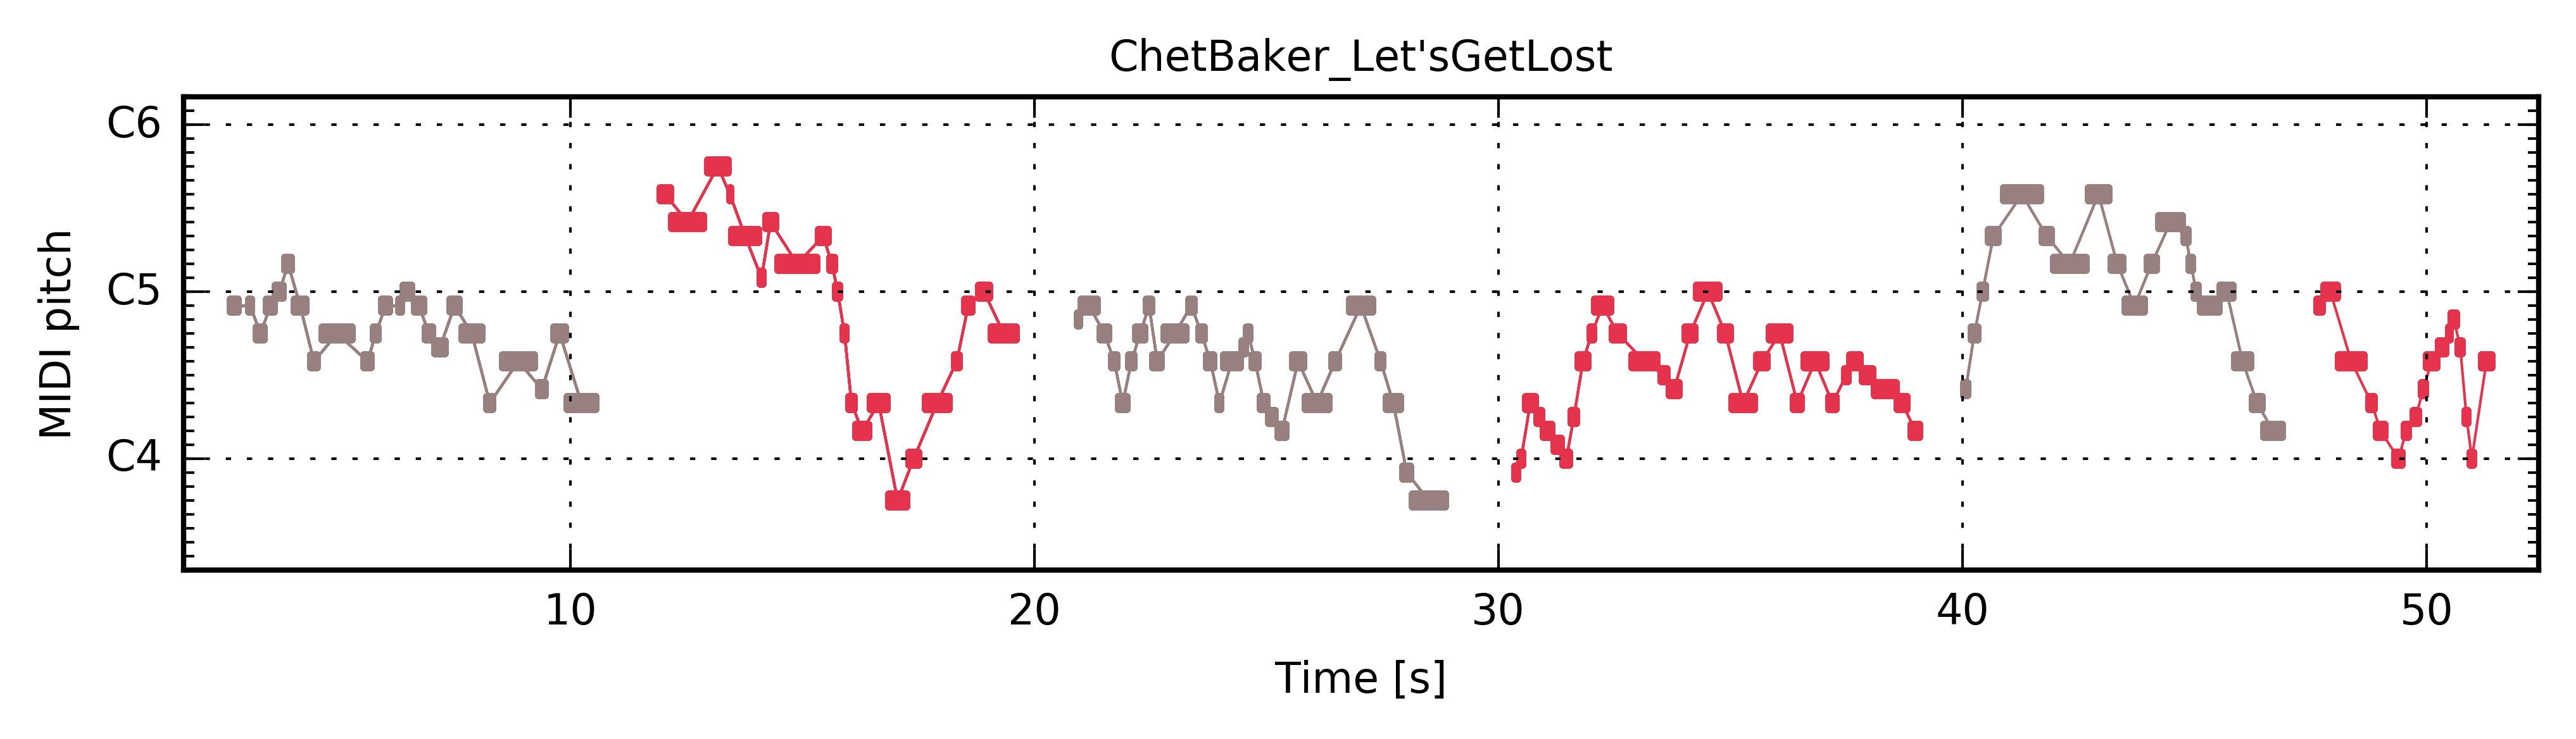 "Chet Baker ""Let's Get Lost"" — The Jazzomat Research Project"